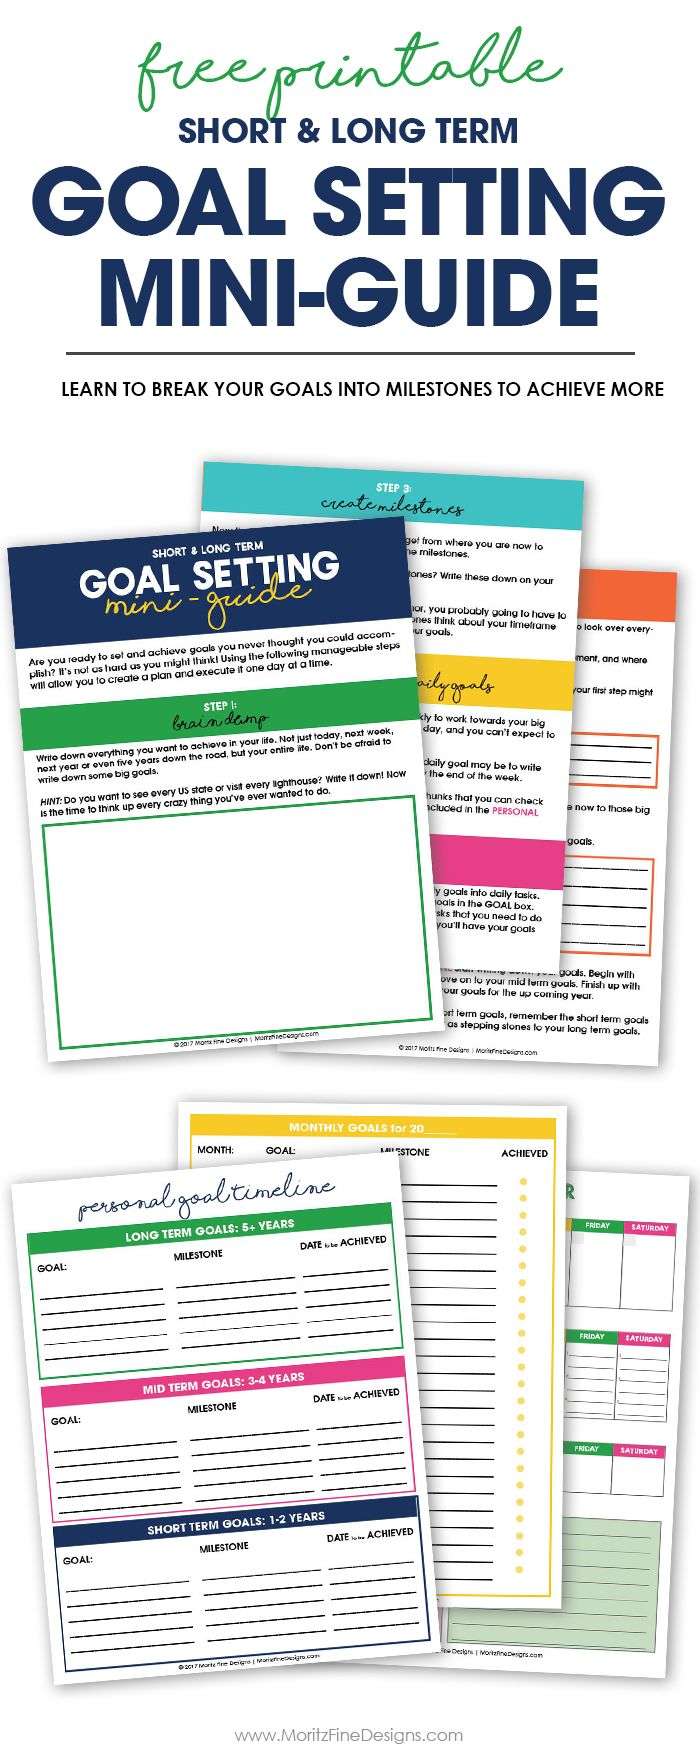 5 Steps To Creating Achievable Goals Free Printable Worksheets Free Goal Printables Goals Worksheet Smart Goals Worksheet [ 1758 x 700 Pixel ]